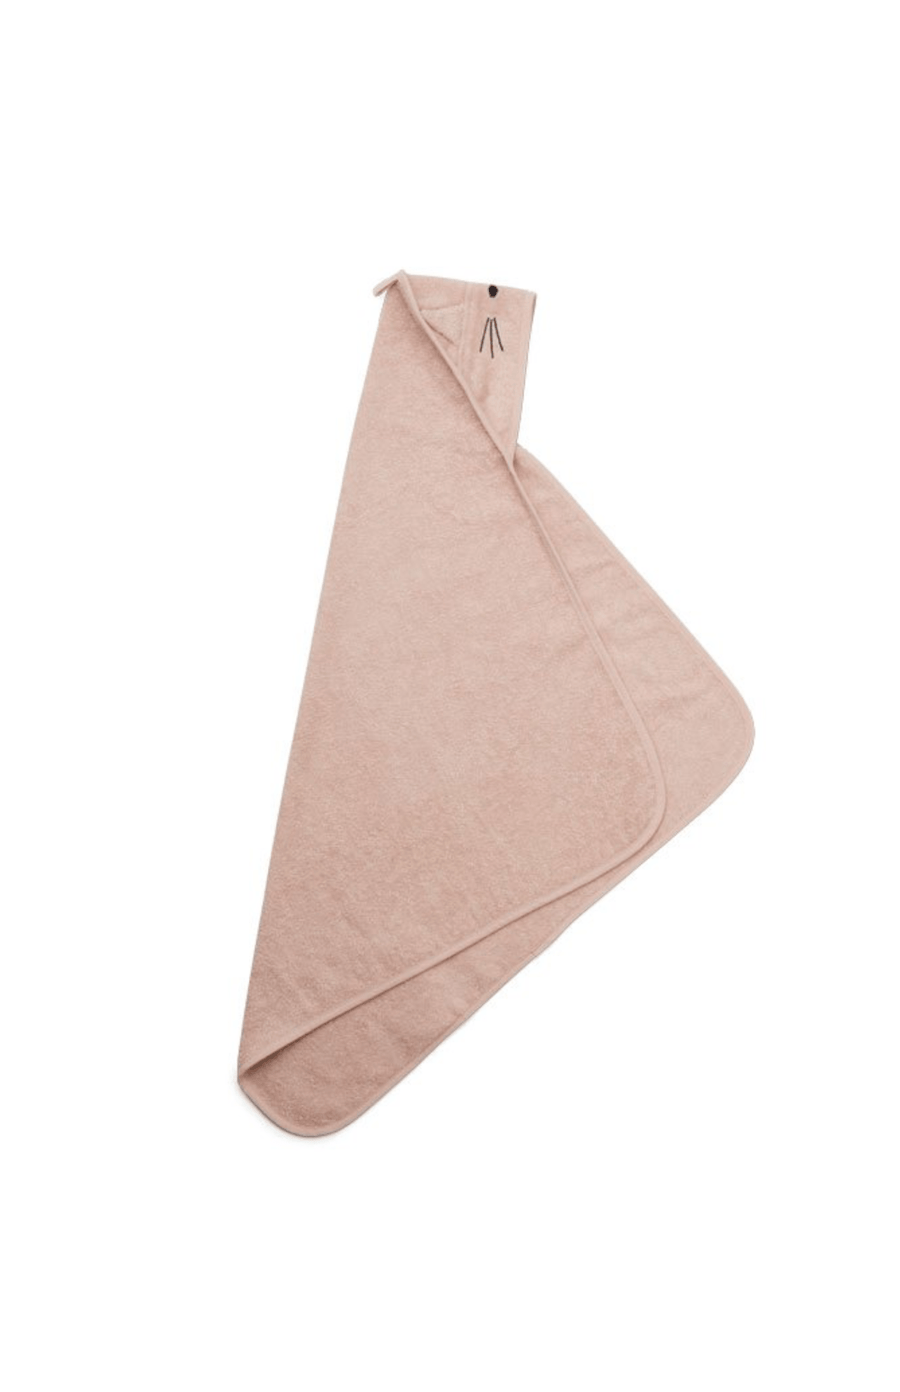 Liewood Hooded Towel - Cat Rose